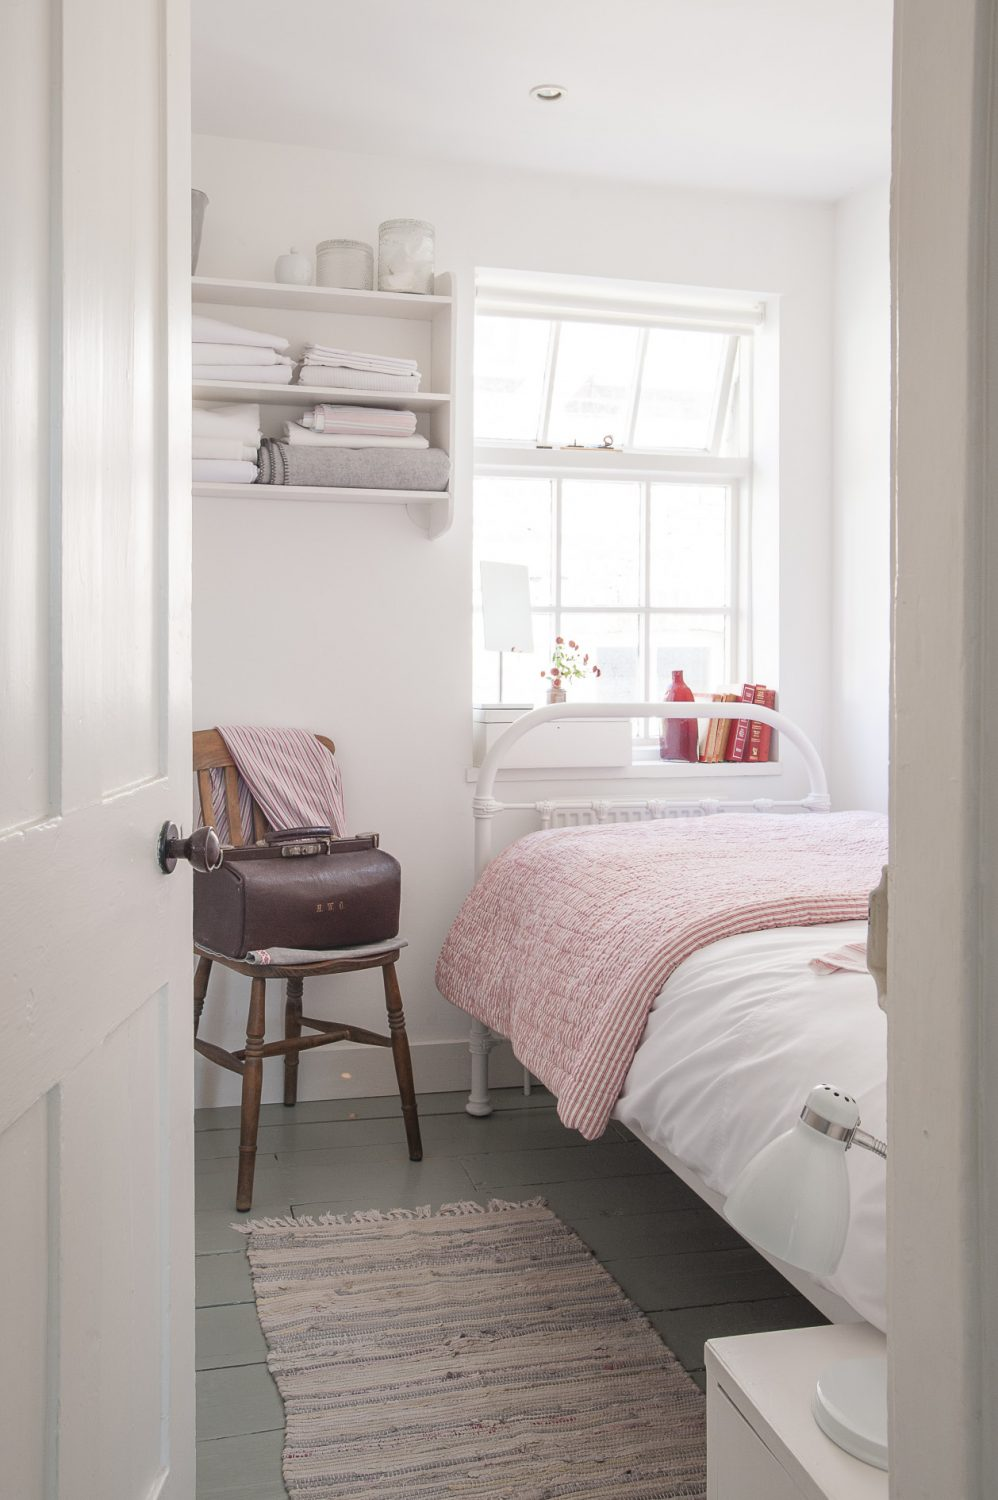 Both bedrooms feature welcoming Victorian-style 'iron' bedsteads. In the larger room there is even space for a modestly sized dressing room